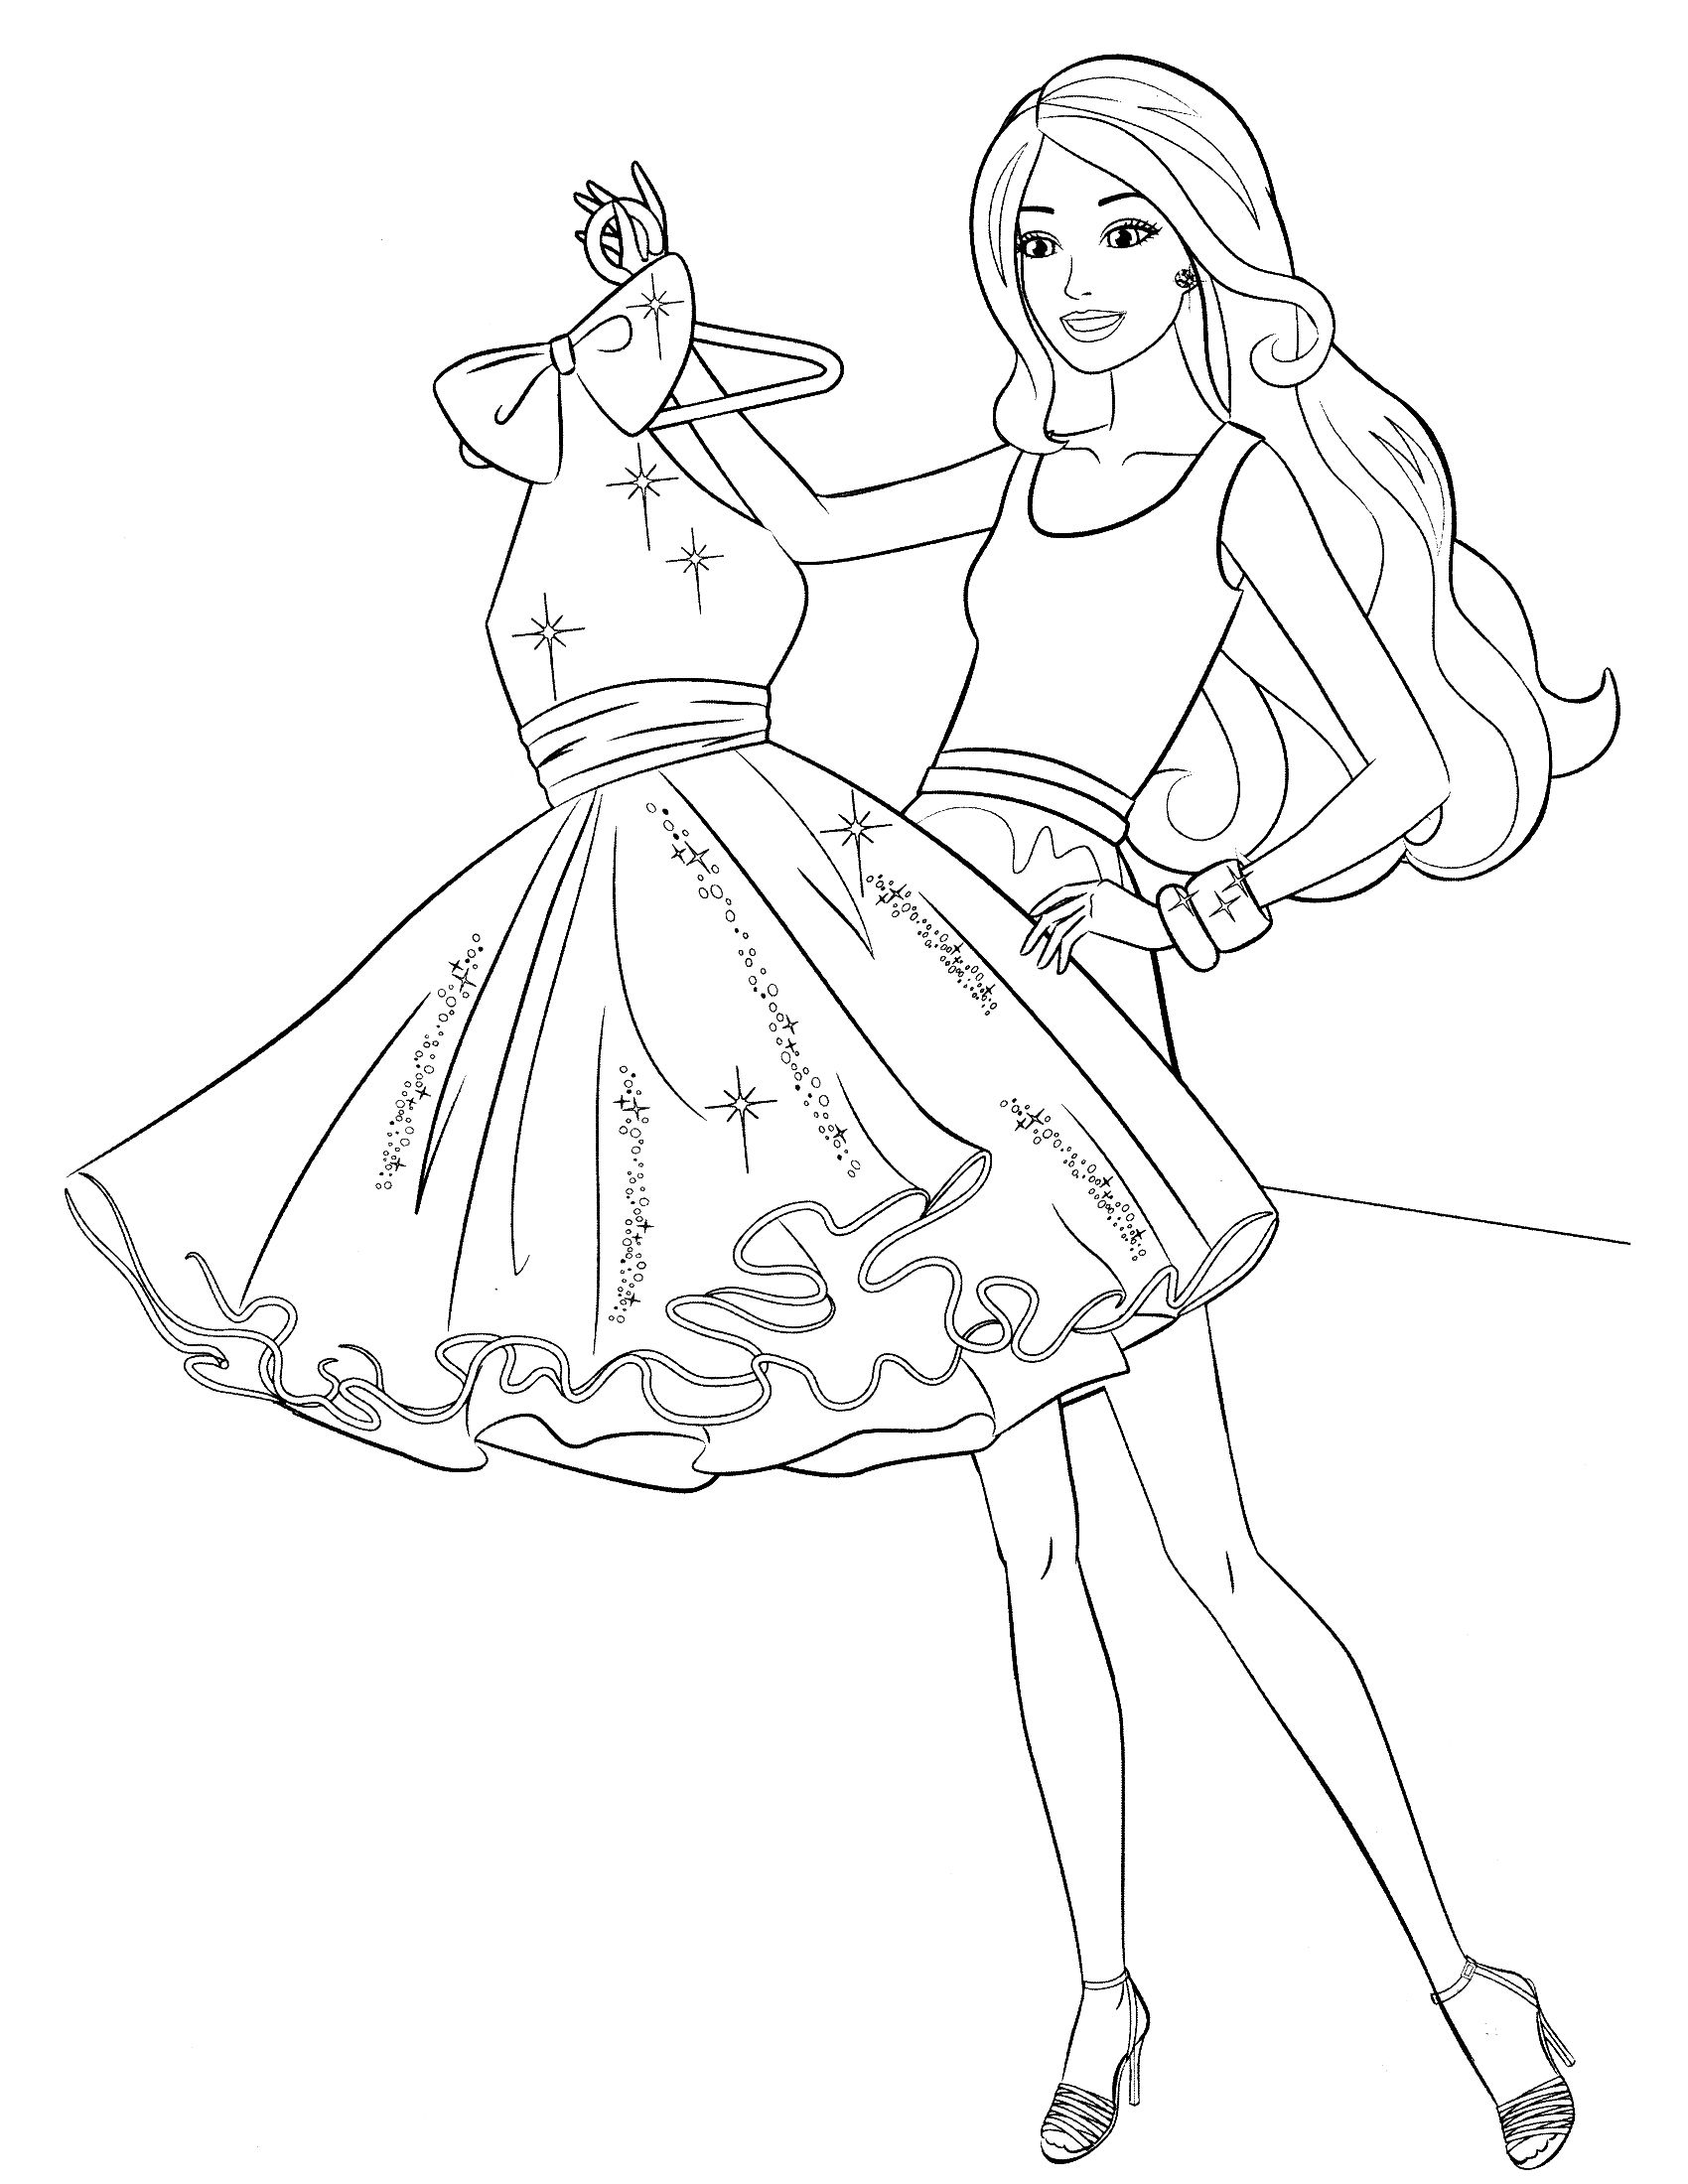 Barbie Dress Coloring Pages Coloring Pages Barbie Coloring Pages Barbie Coloring Princess Coloring Pages